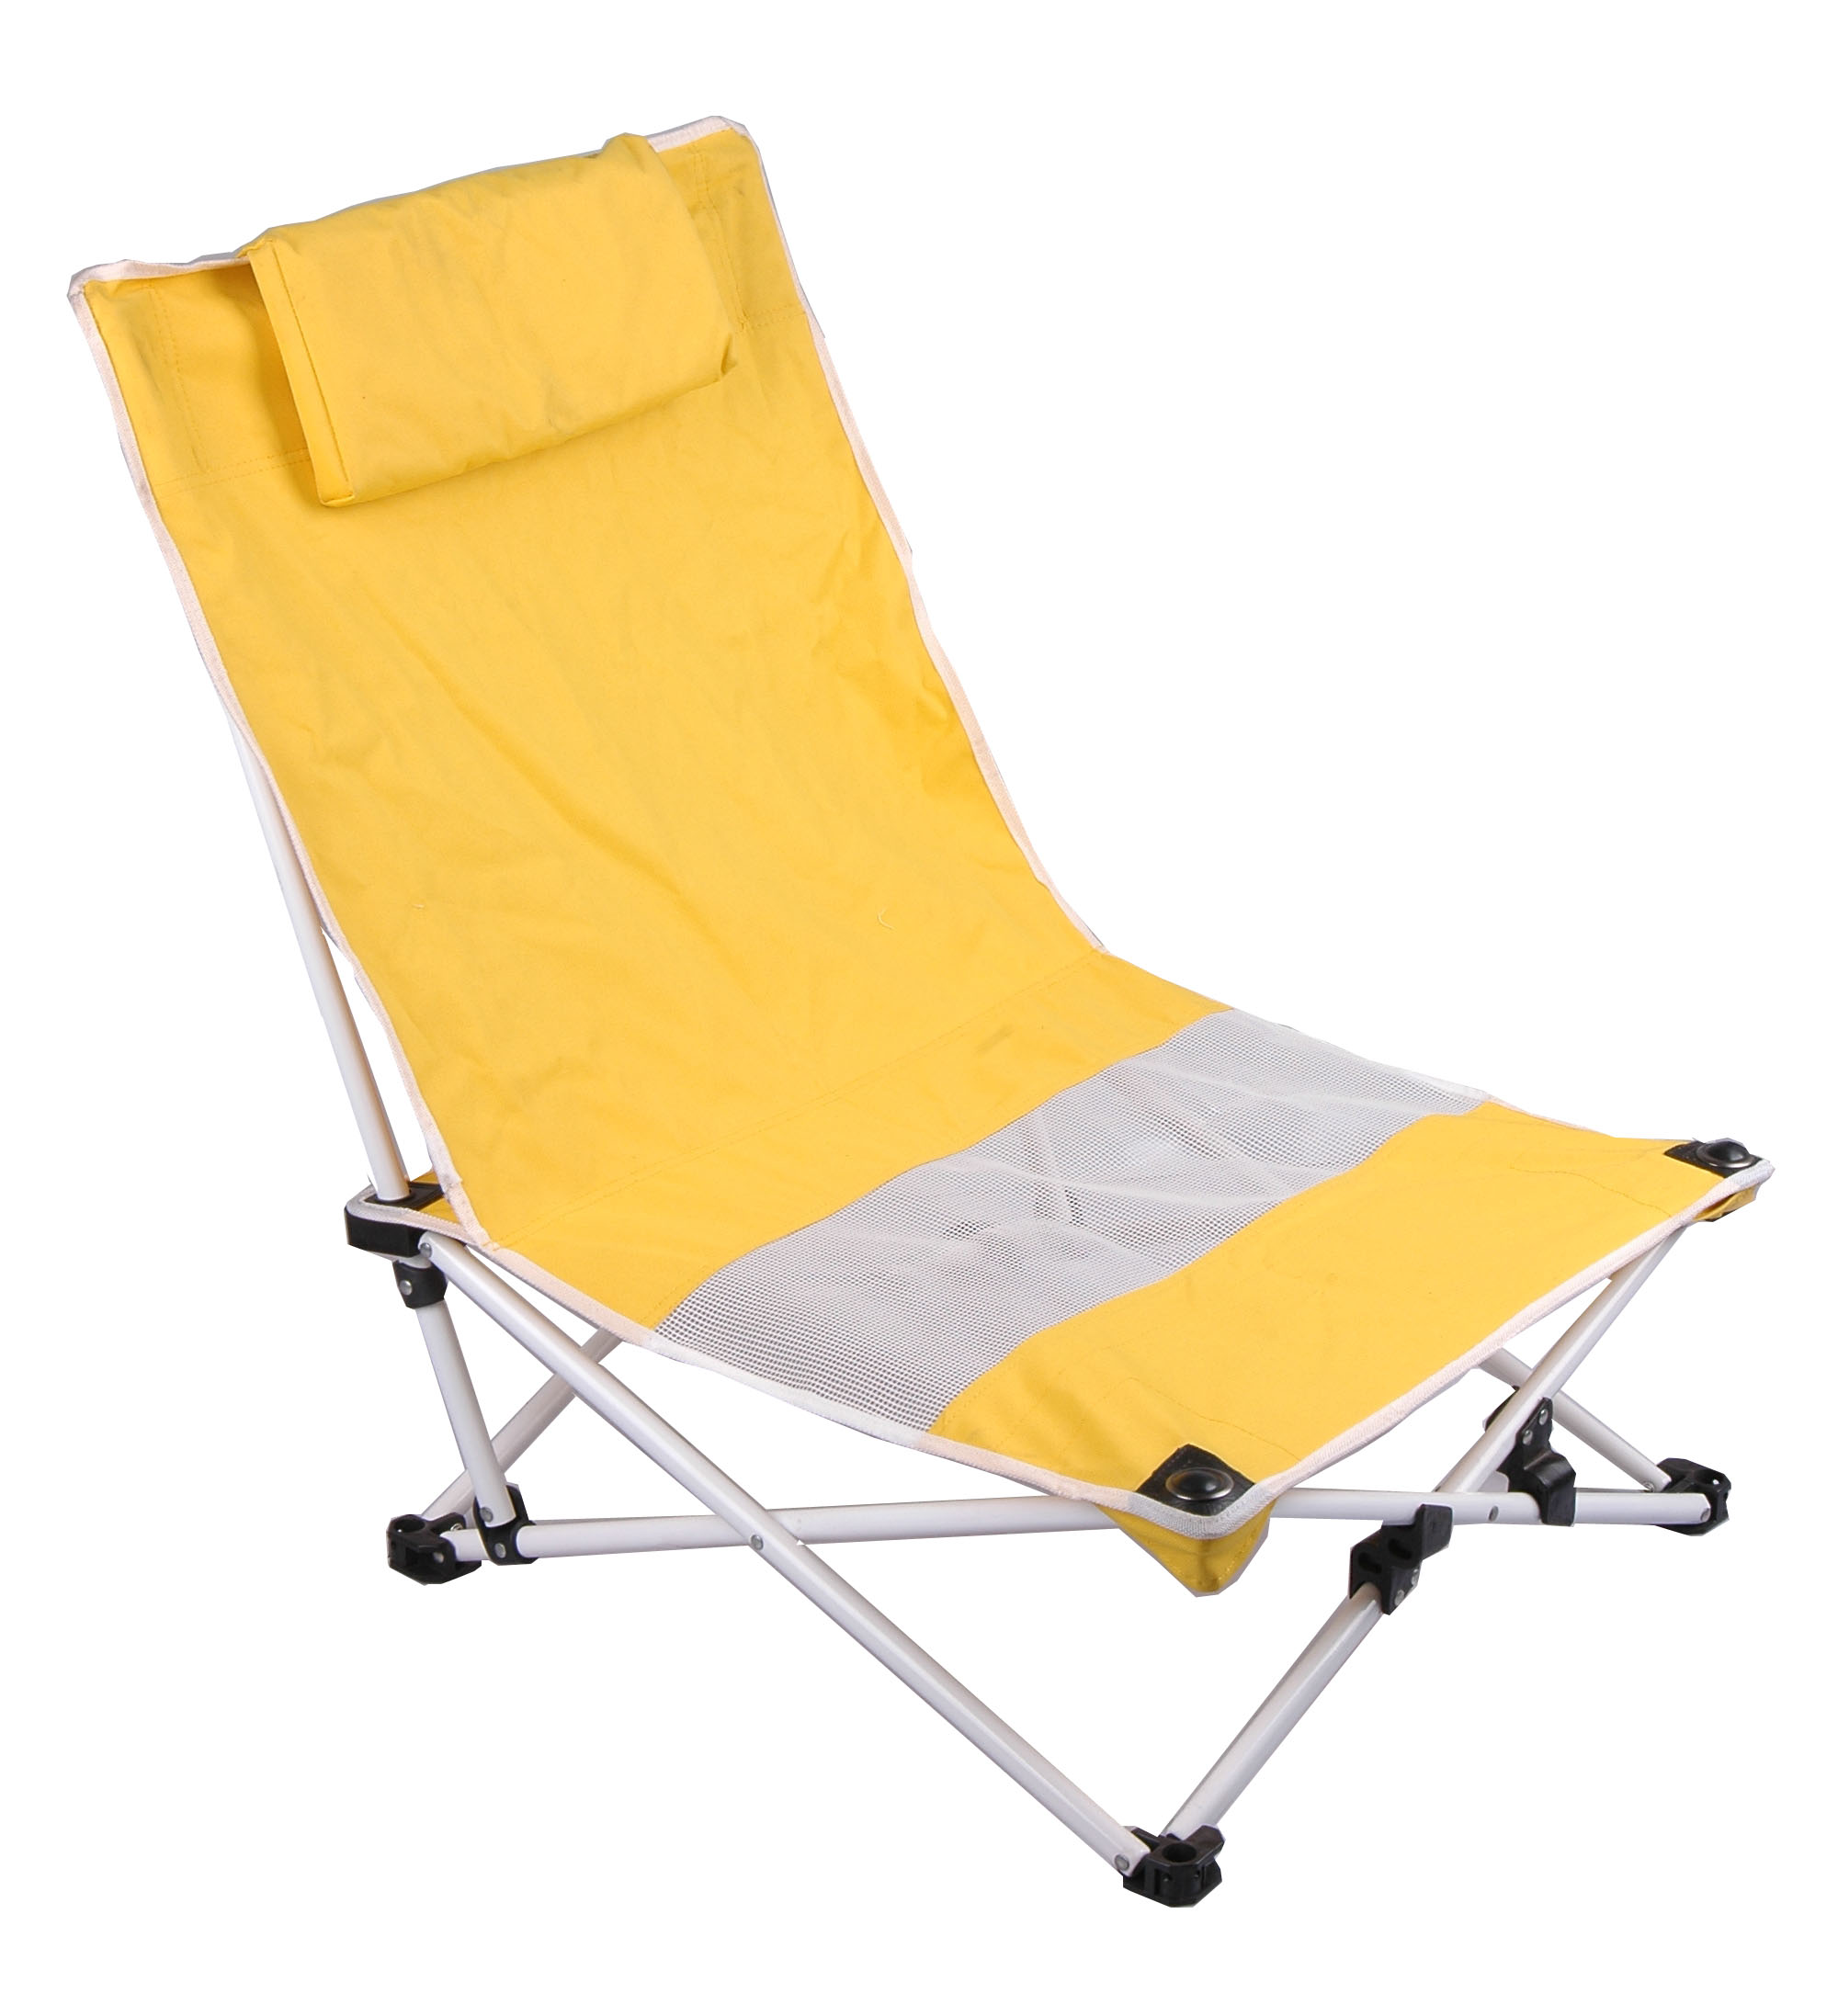 CAMPING FURNITURE CHAIR SETS TABLE BED LOUNGE